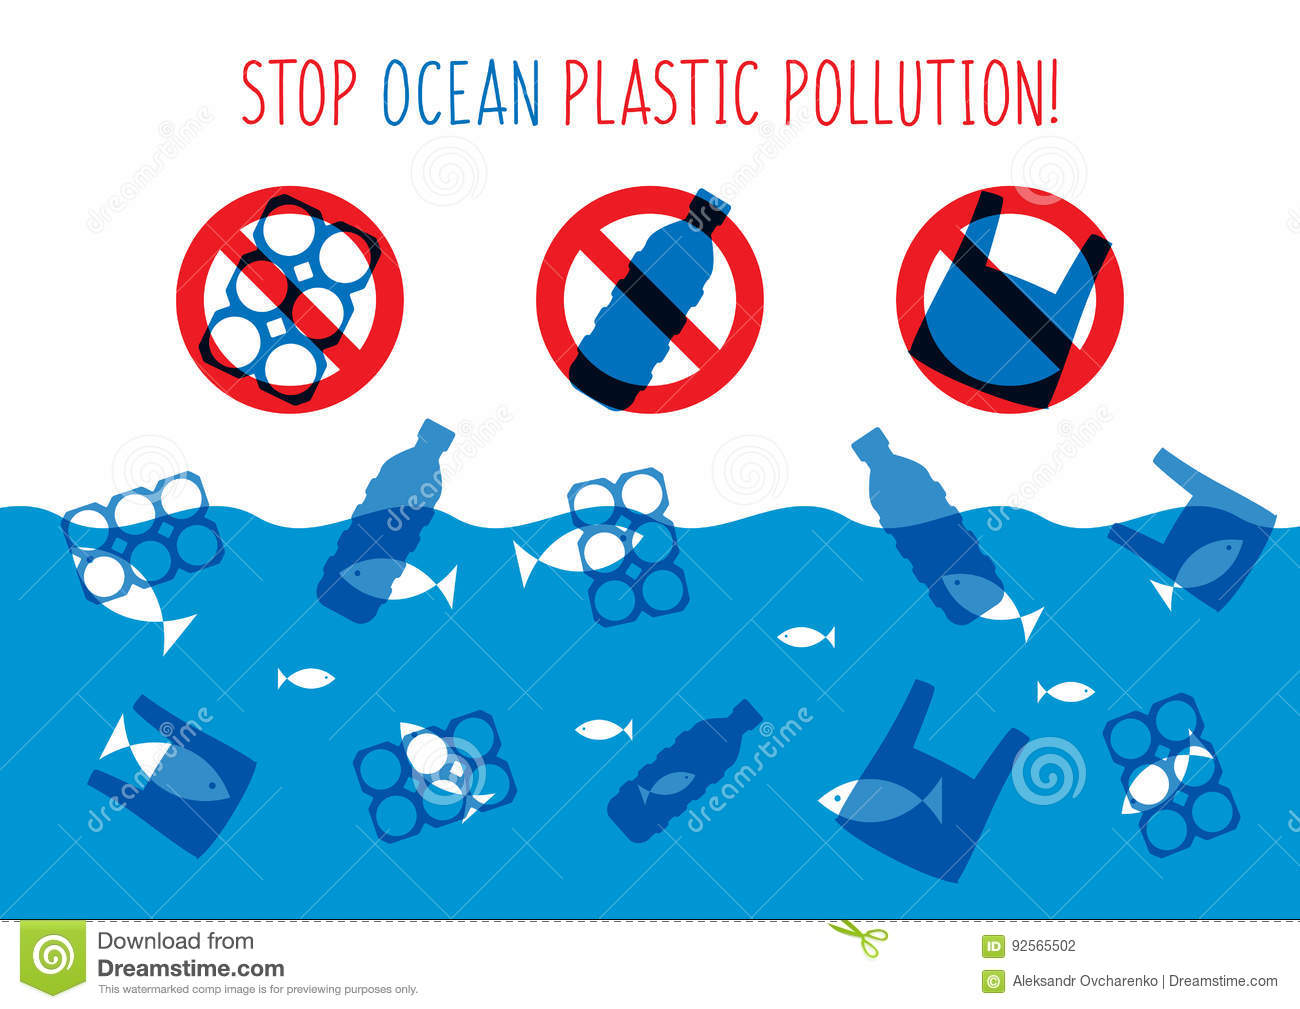 we should stop polluting the earths oceans